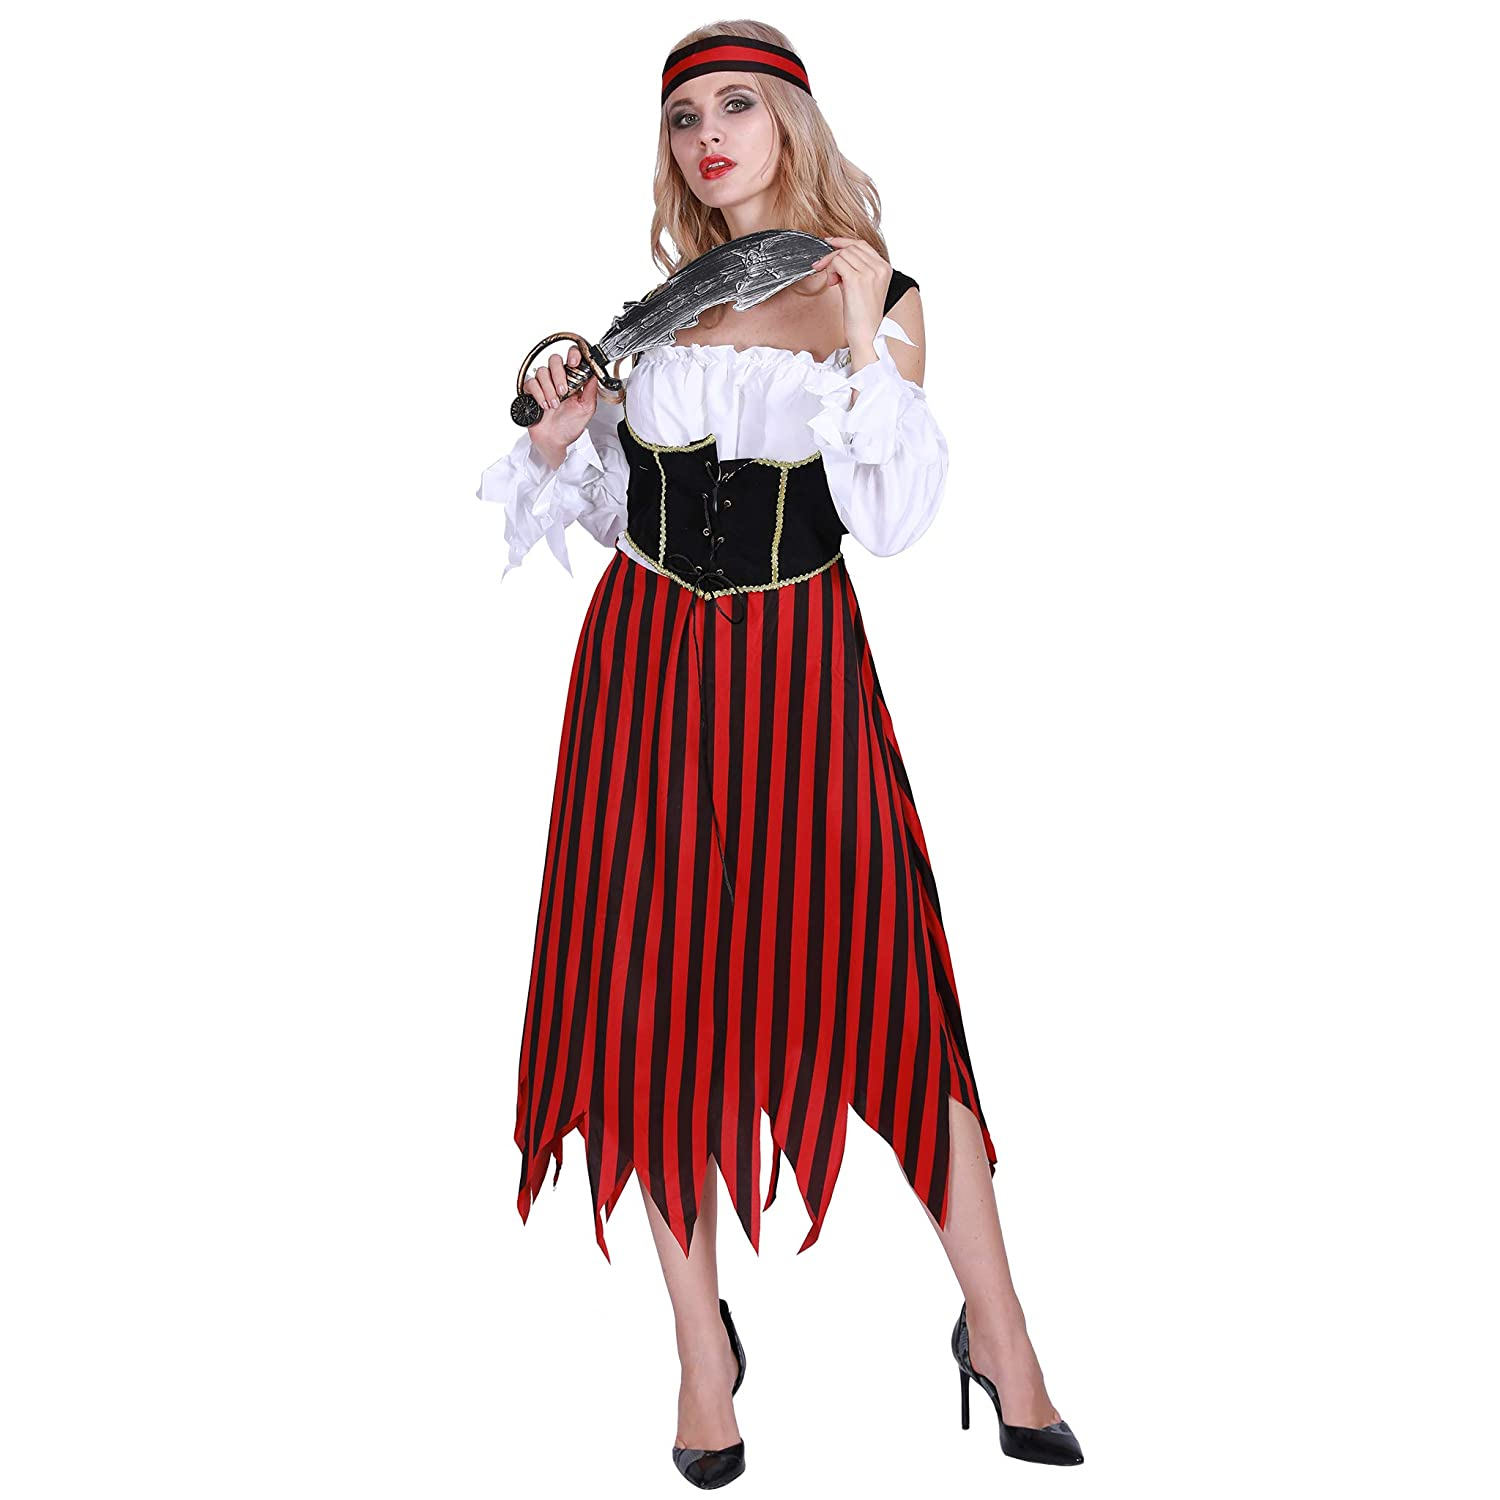 6f0a24cbe3a EraSpooky Women's Pirate Costume Halloween Adult Pirate Dress Buccaneer for  Women - Funny Cosplay Party